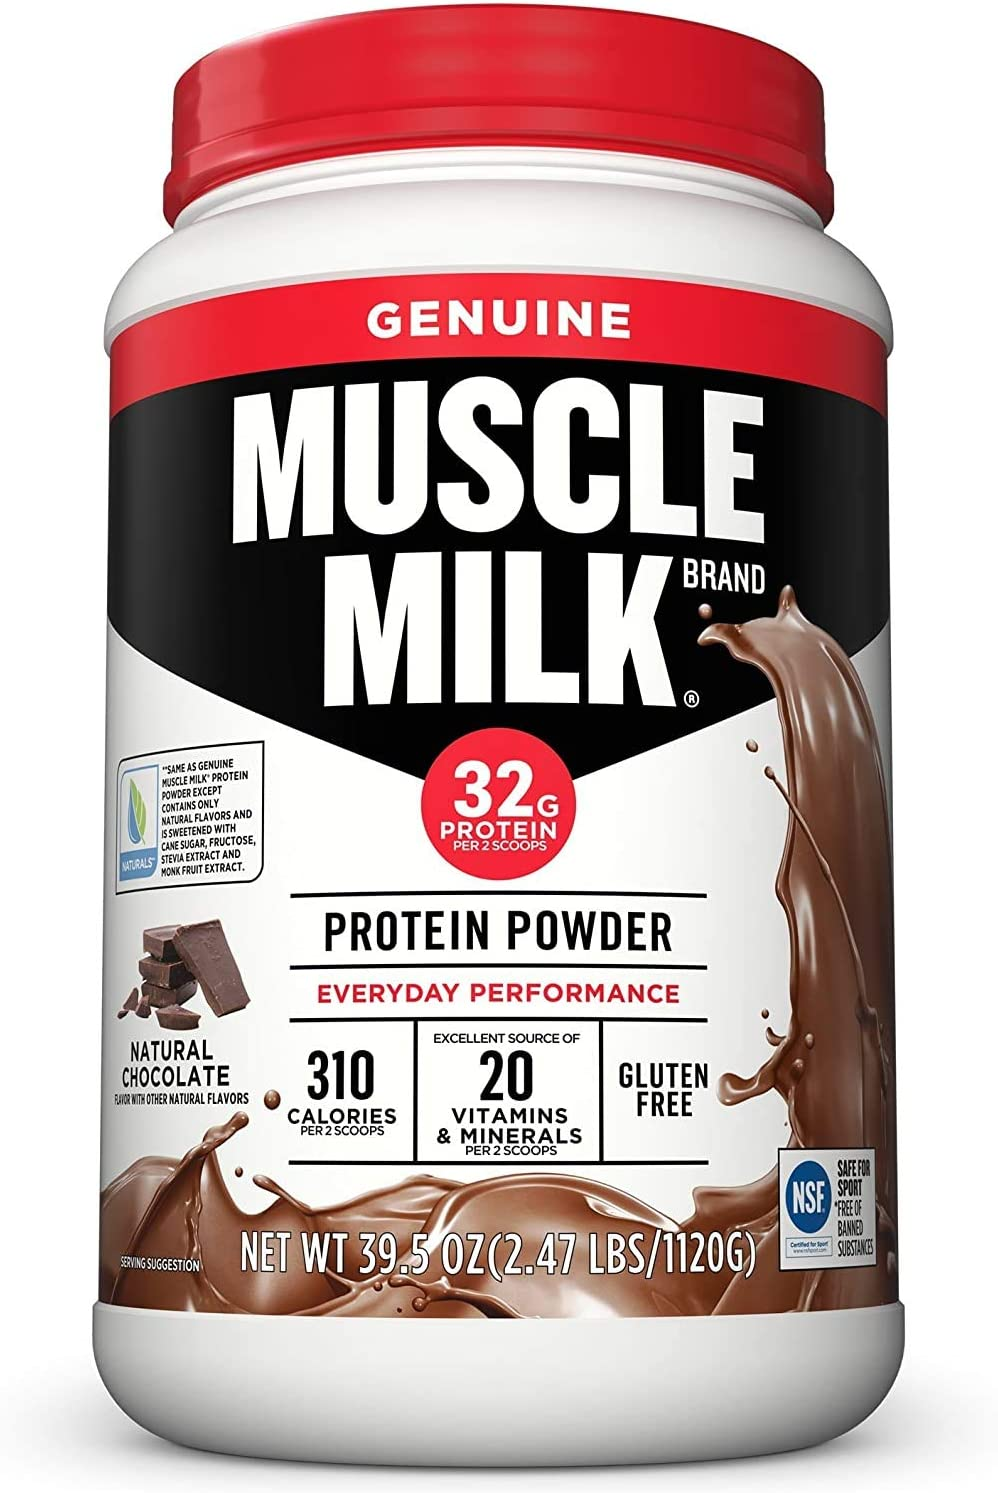 Muscle Milk Genuine Protein Powder 32g Max 83% OFF Chocolate Prote Some reservation Natural